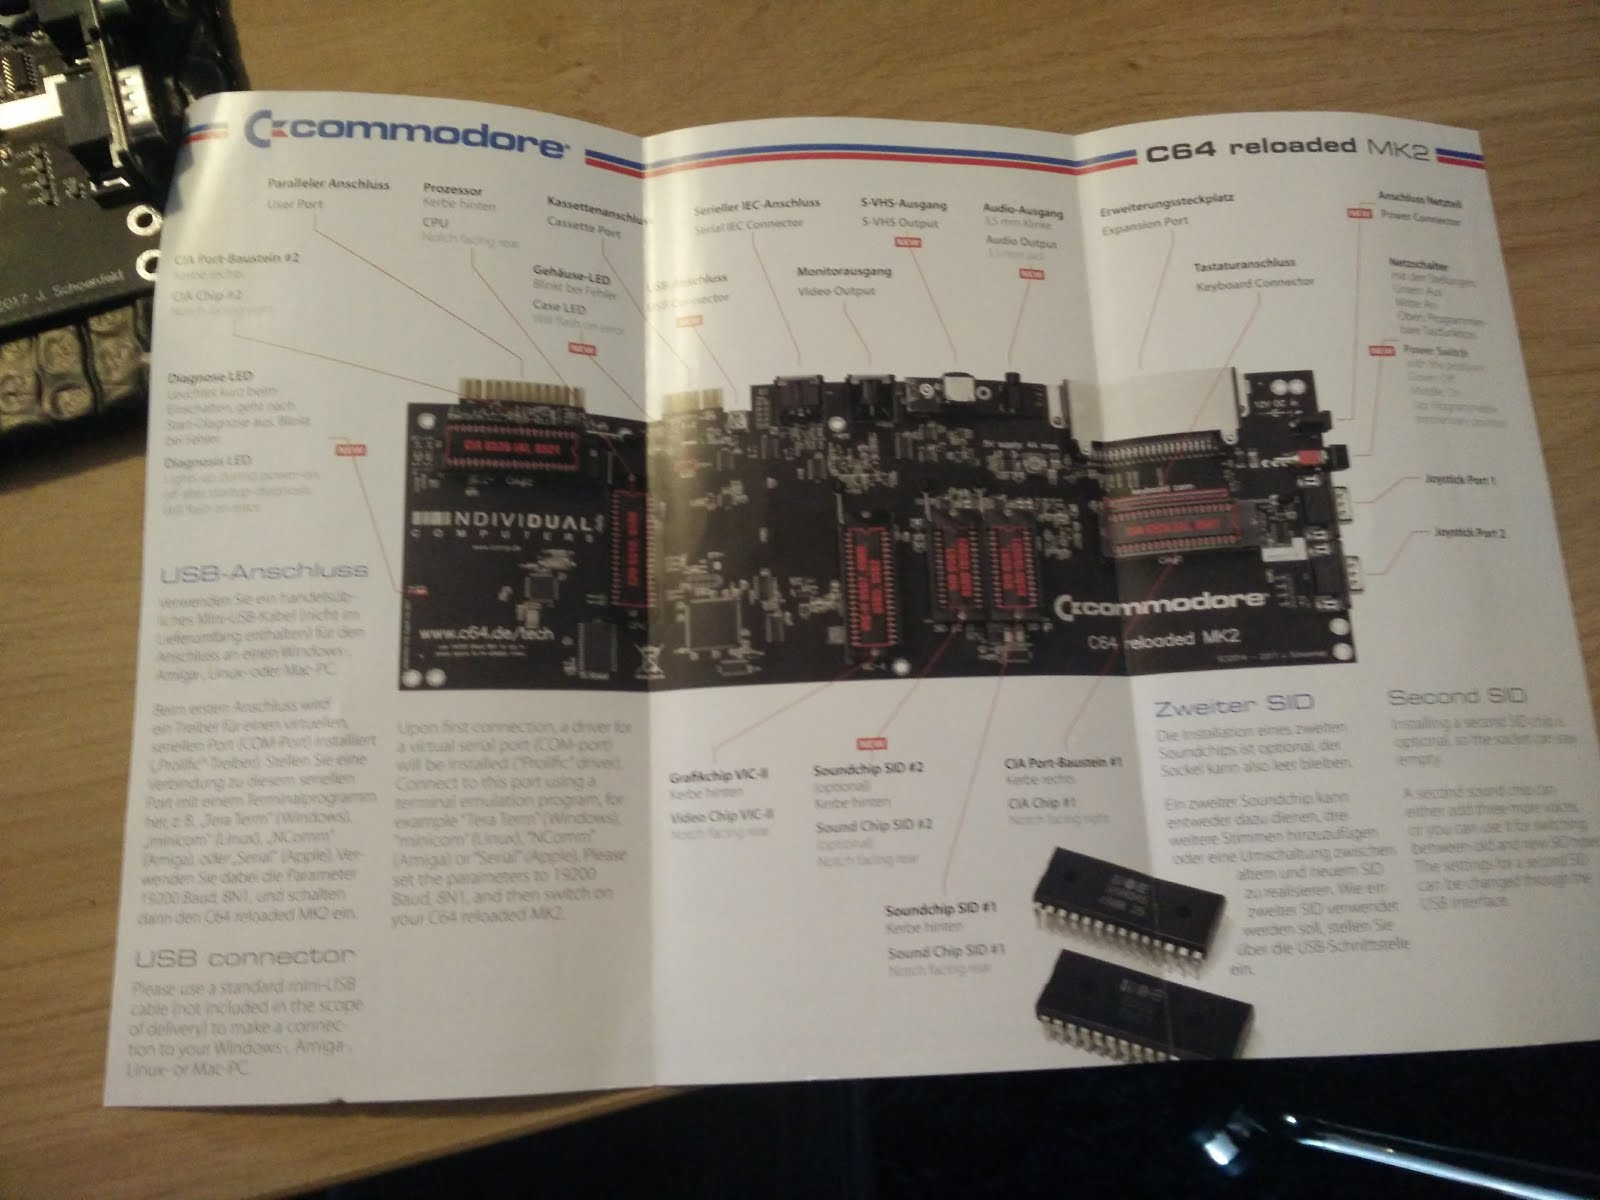 DevDef: C64 Reloaded MK2 review and build